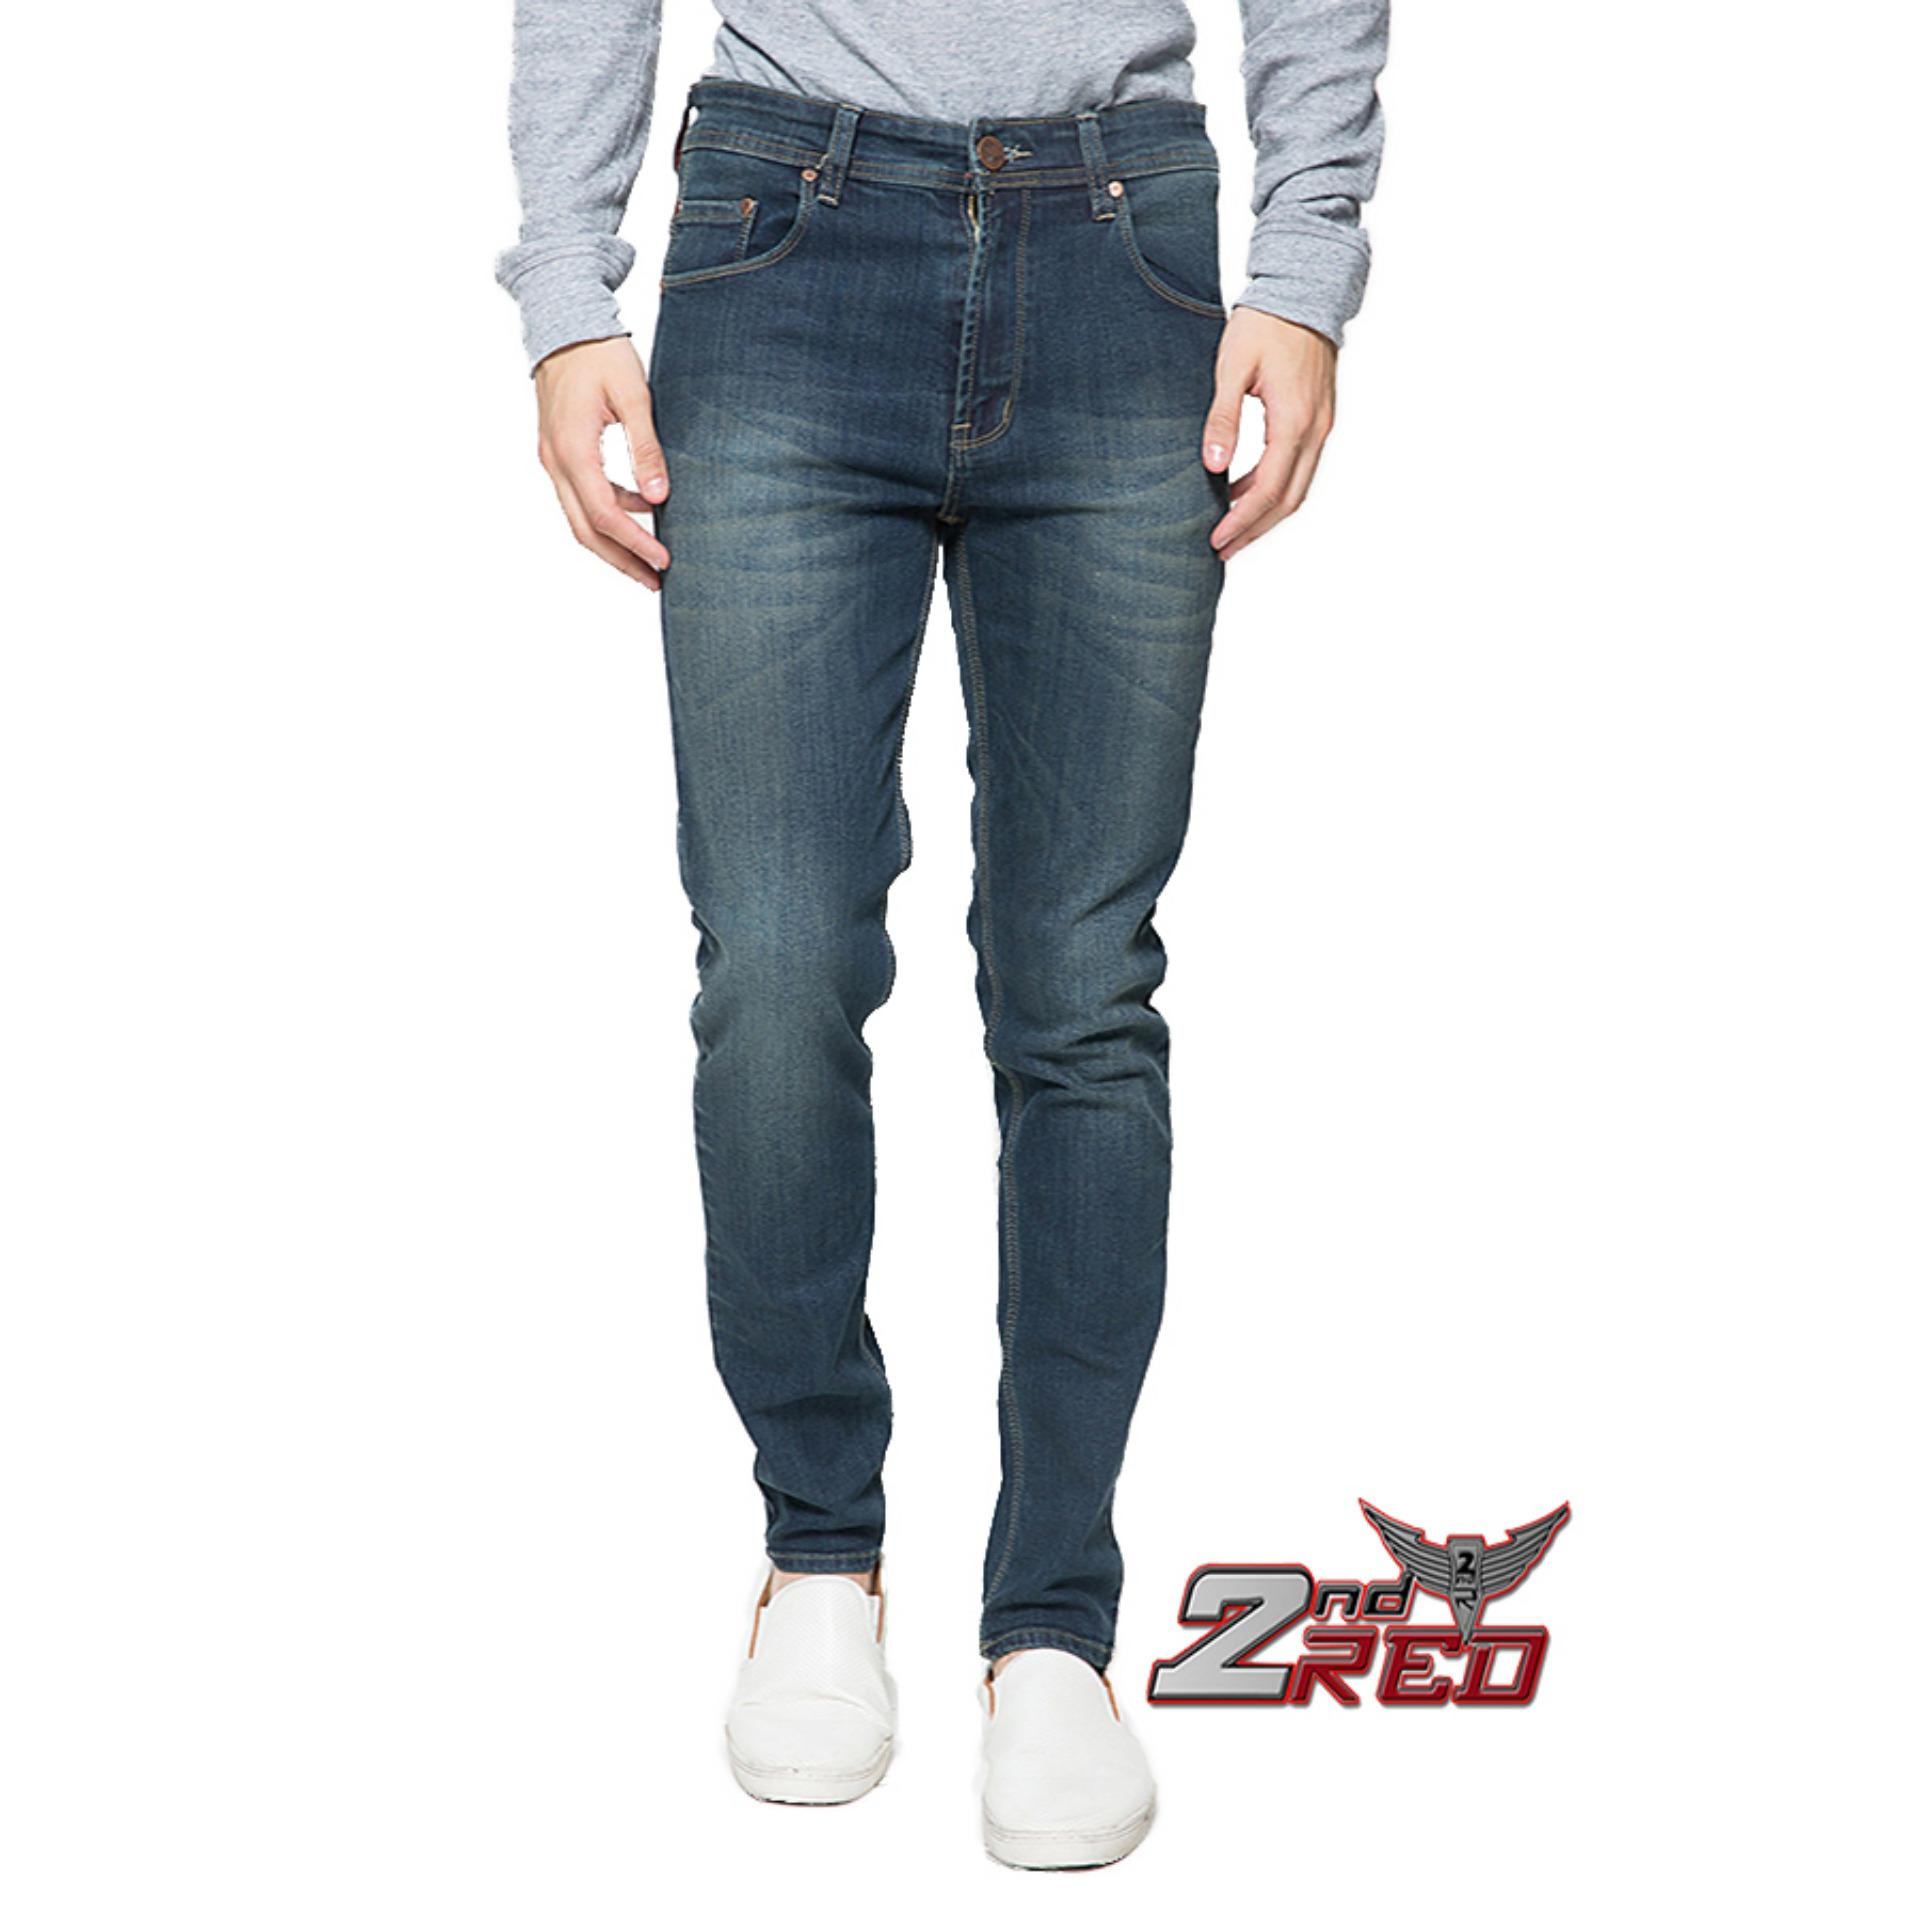 2Nd RED Slim Fit Best Seller Biru Keabuan 133221